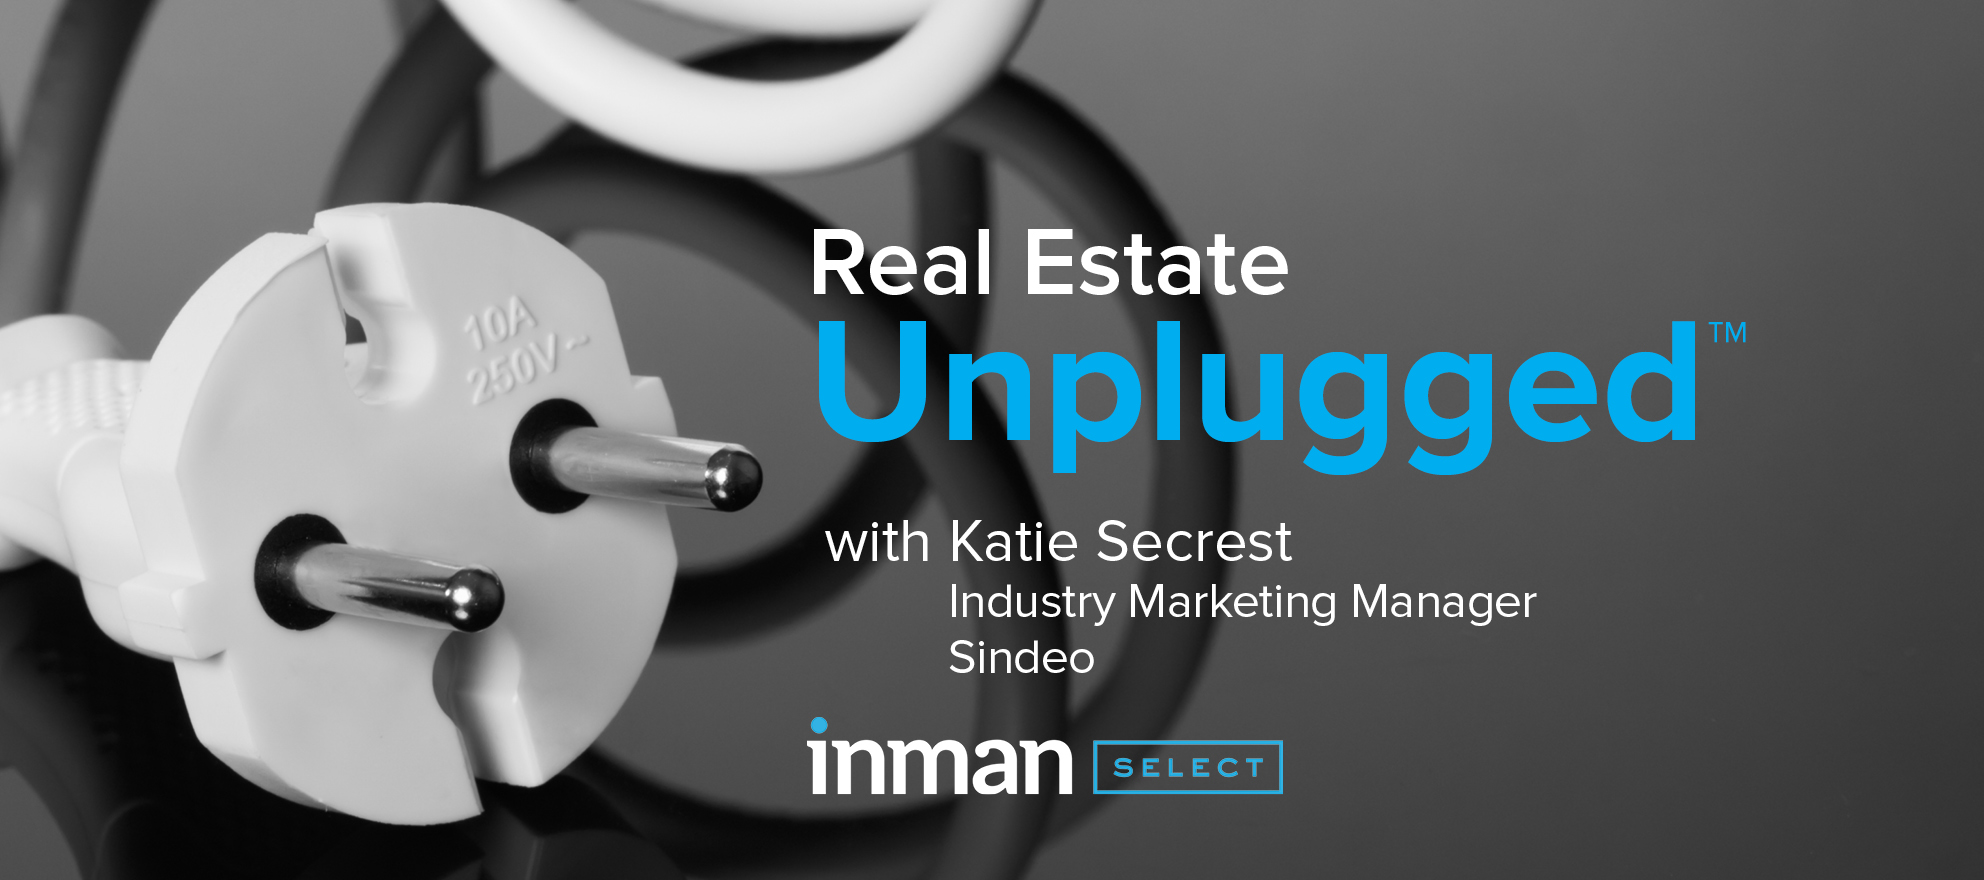 Katie Secrest on empowering her team and building relationships